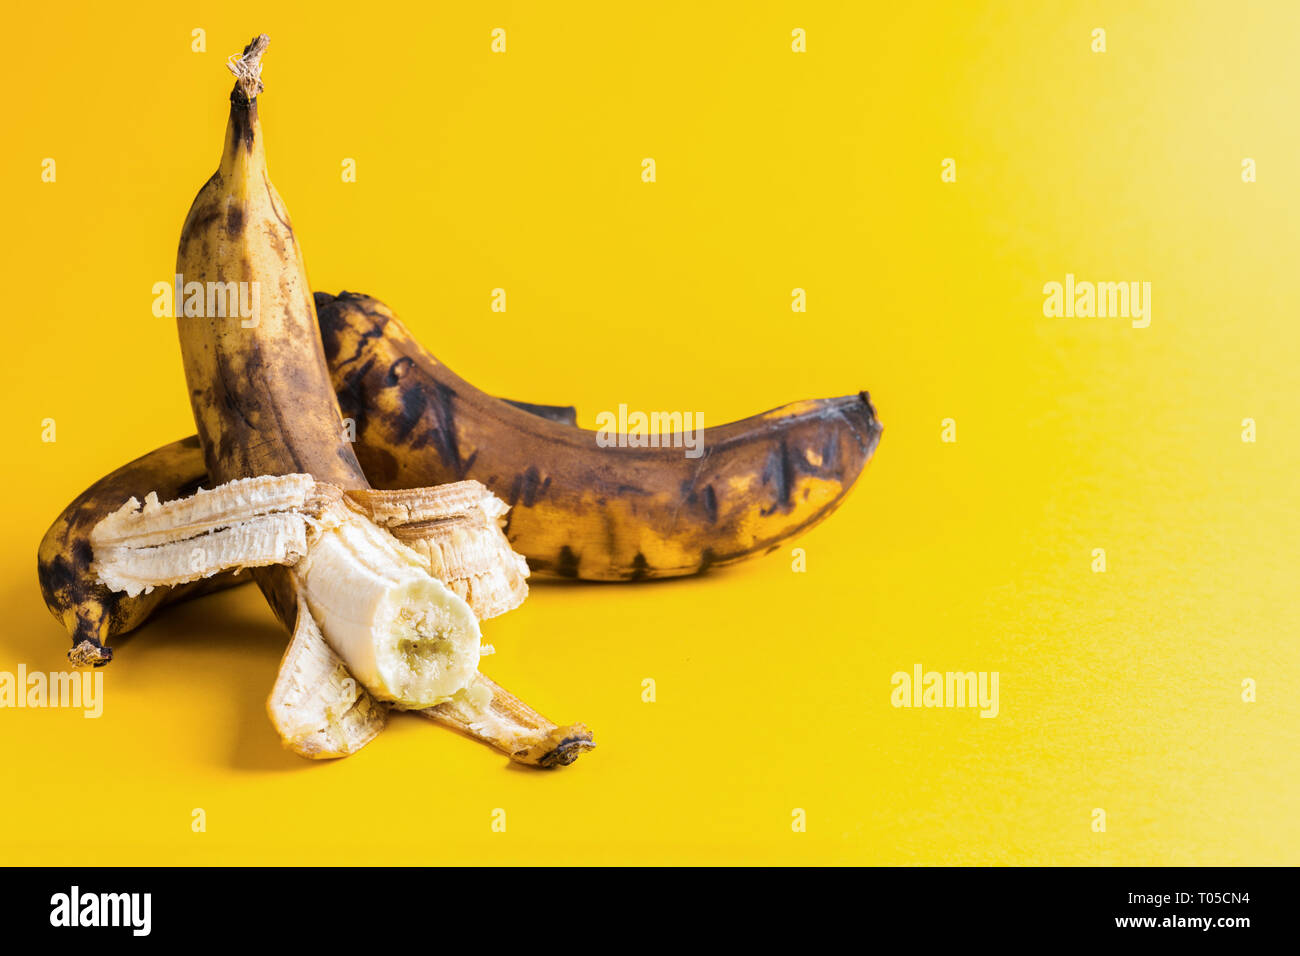 Two overripe blackened ugly bananas on bright yellow background . - Stock Image